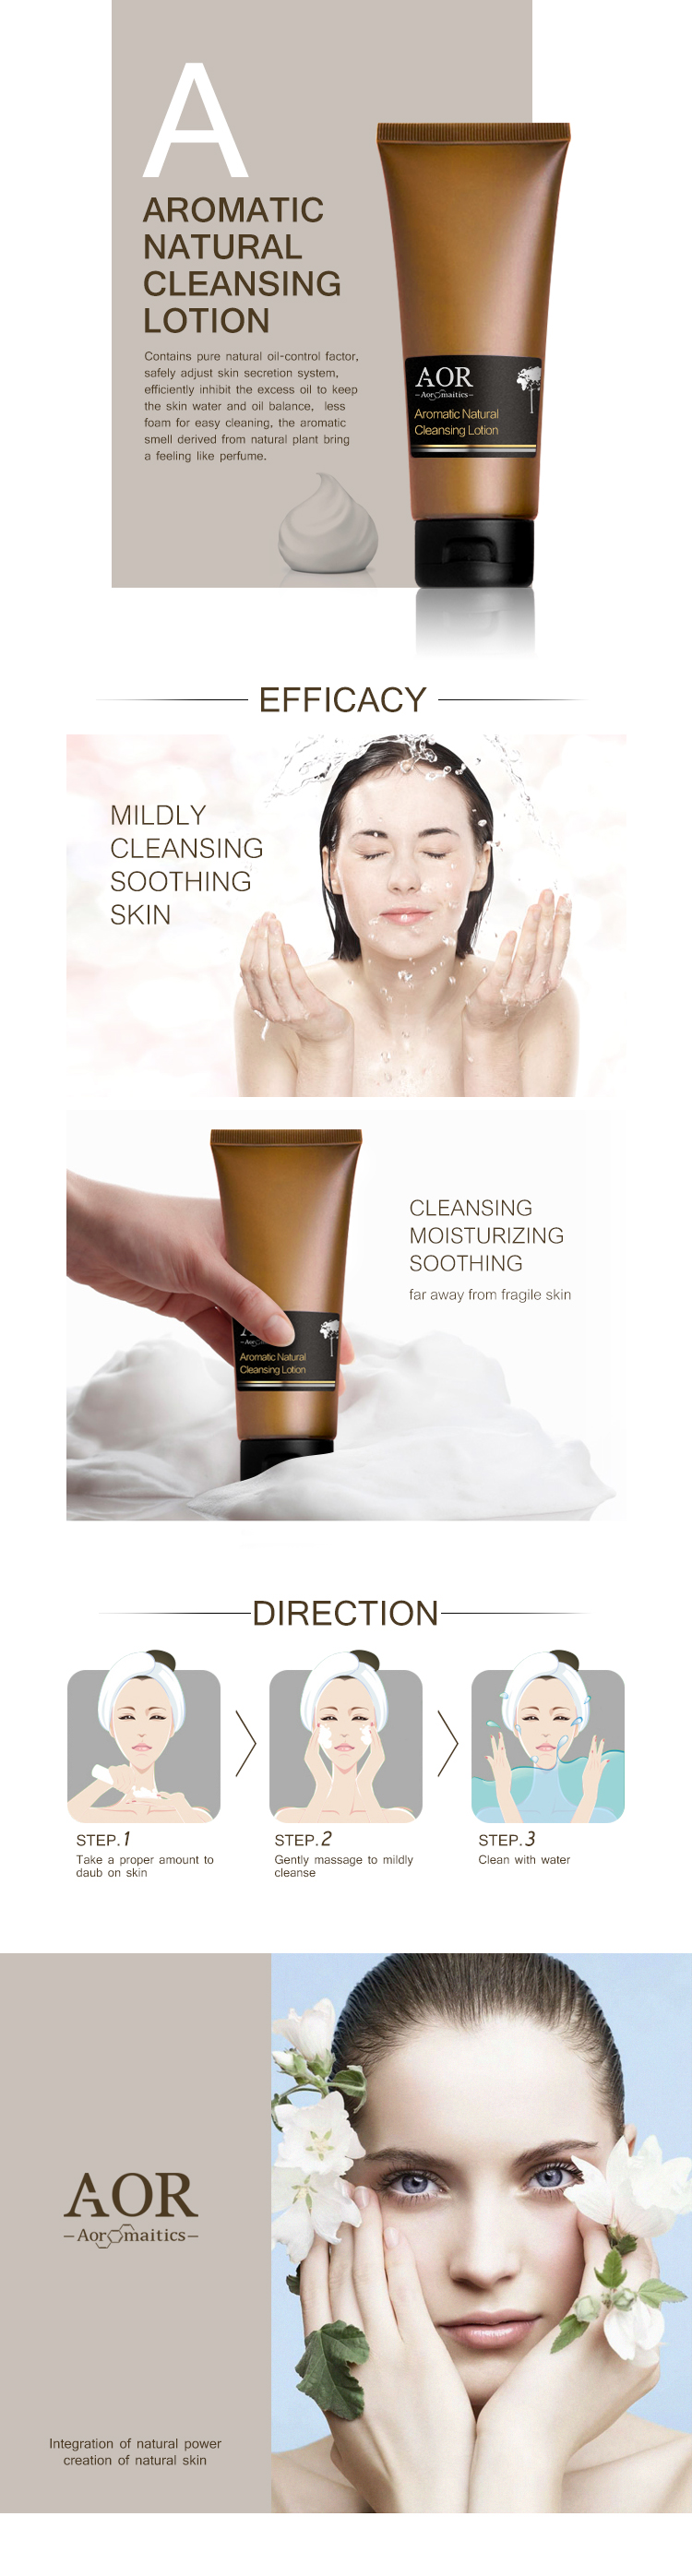 Wholesale Aromatic Natural Cleansing Lotion for Skin balancer Skin regulator facial cleanser